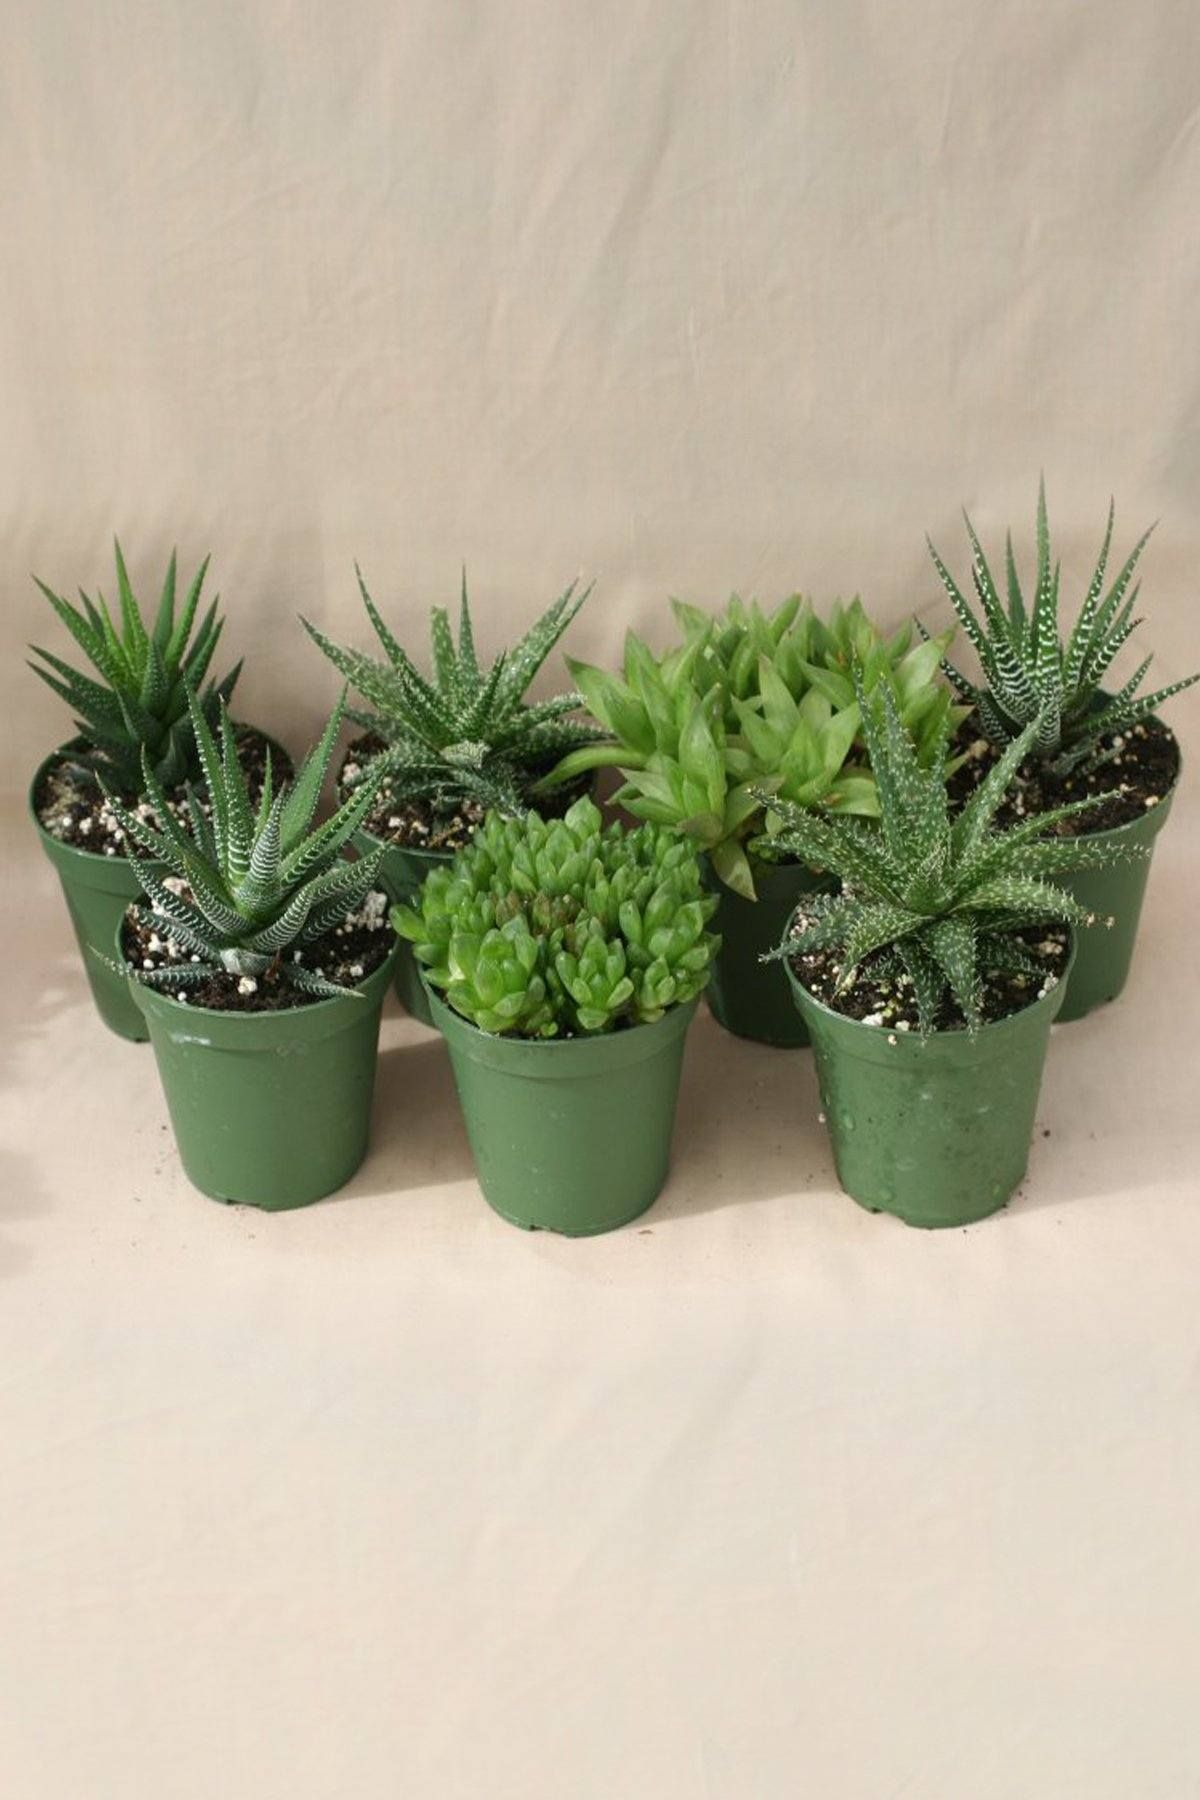 Buy Haworthia Succulent, Haworthia Succulent Assortment